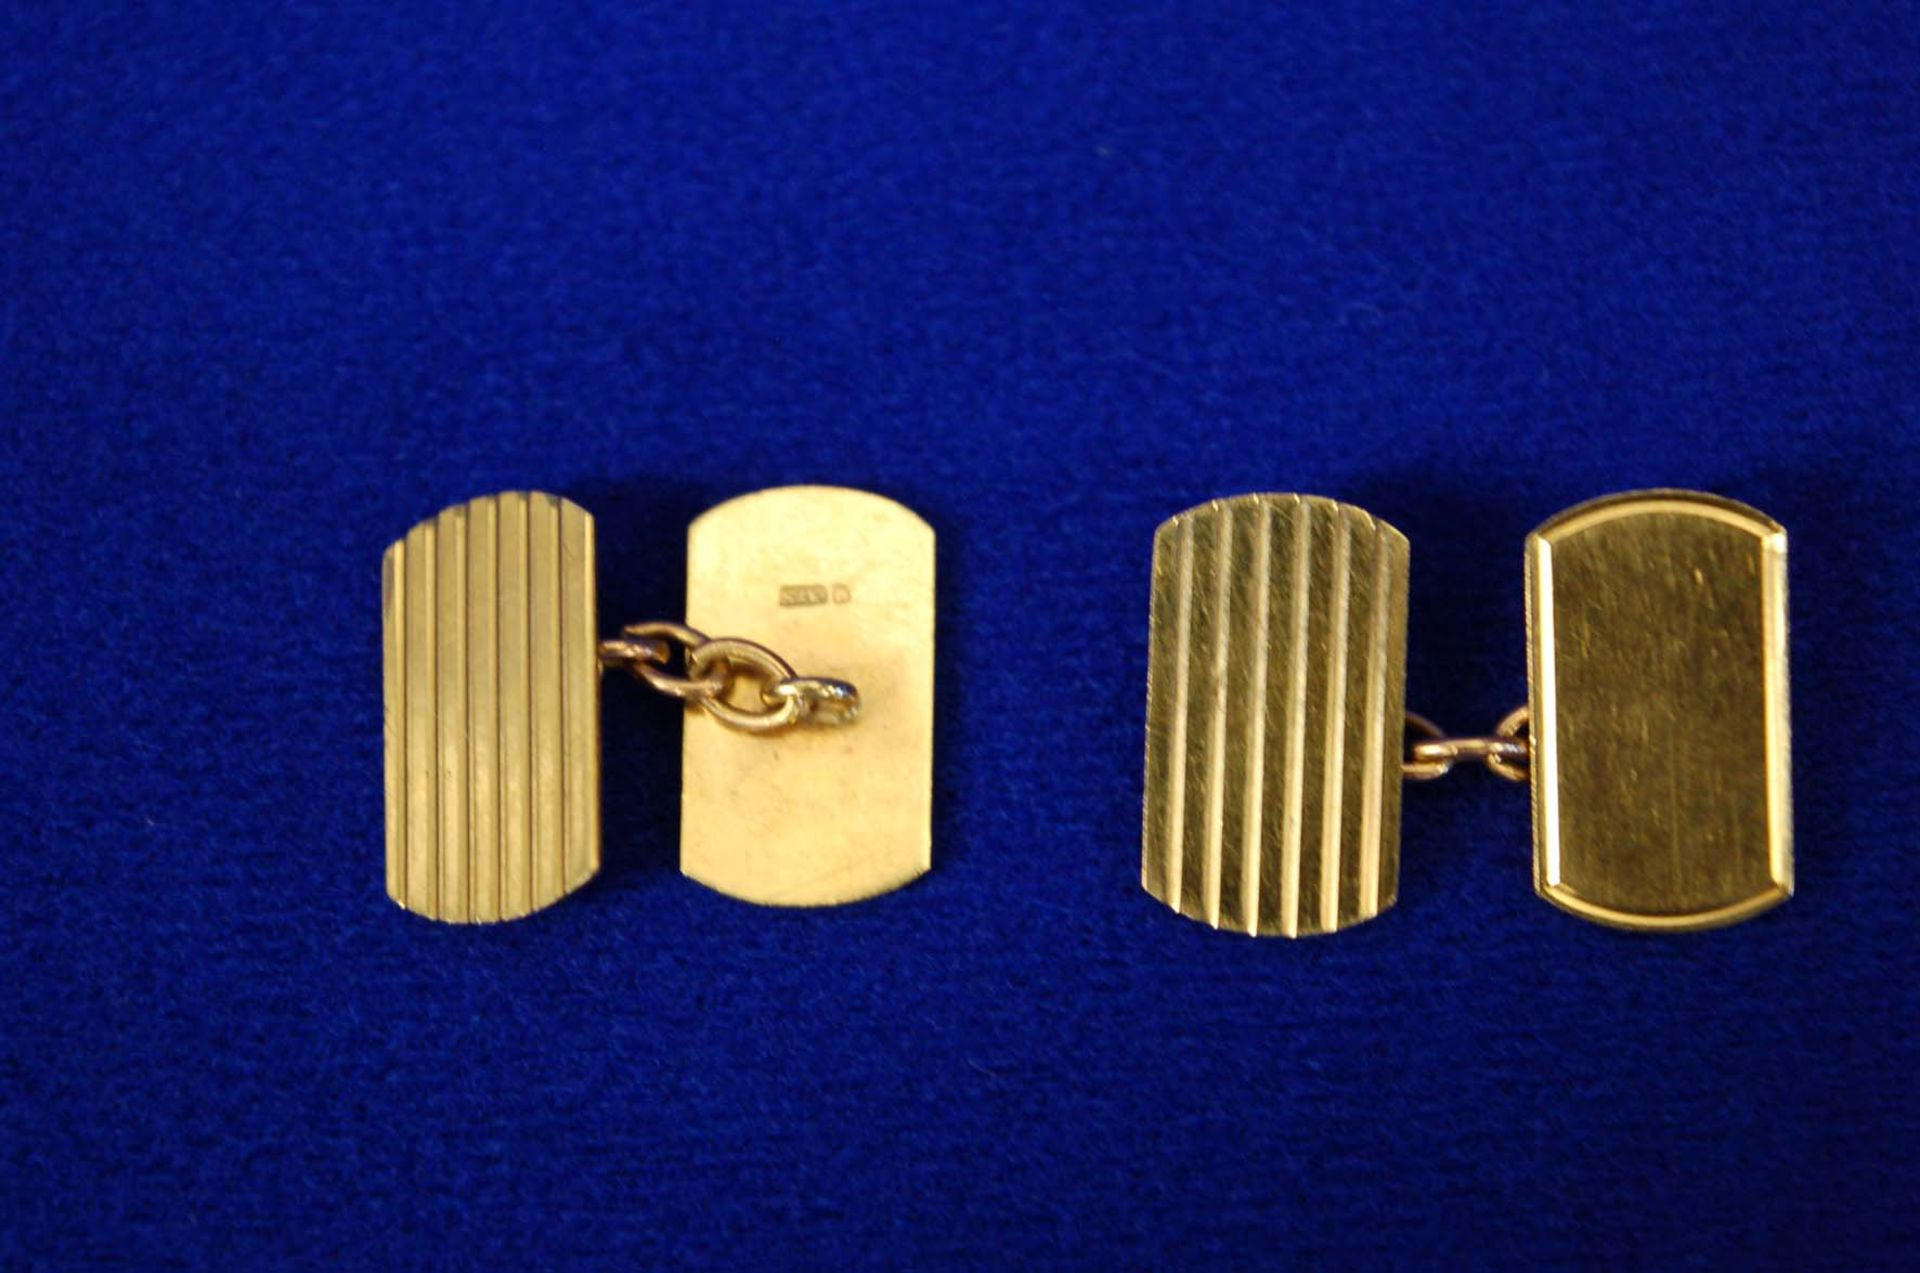 Lot 8 - A Pair 9ct Gold Men's Double Linked Cufflinks of Oblong Form with Radiused Corners with Engraved